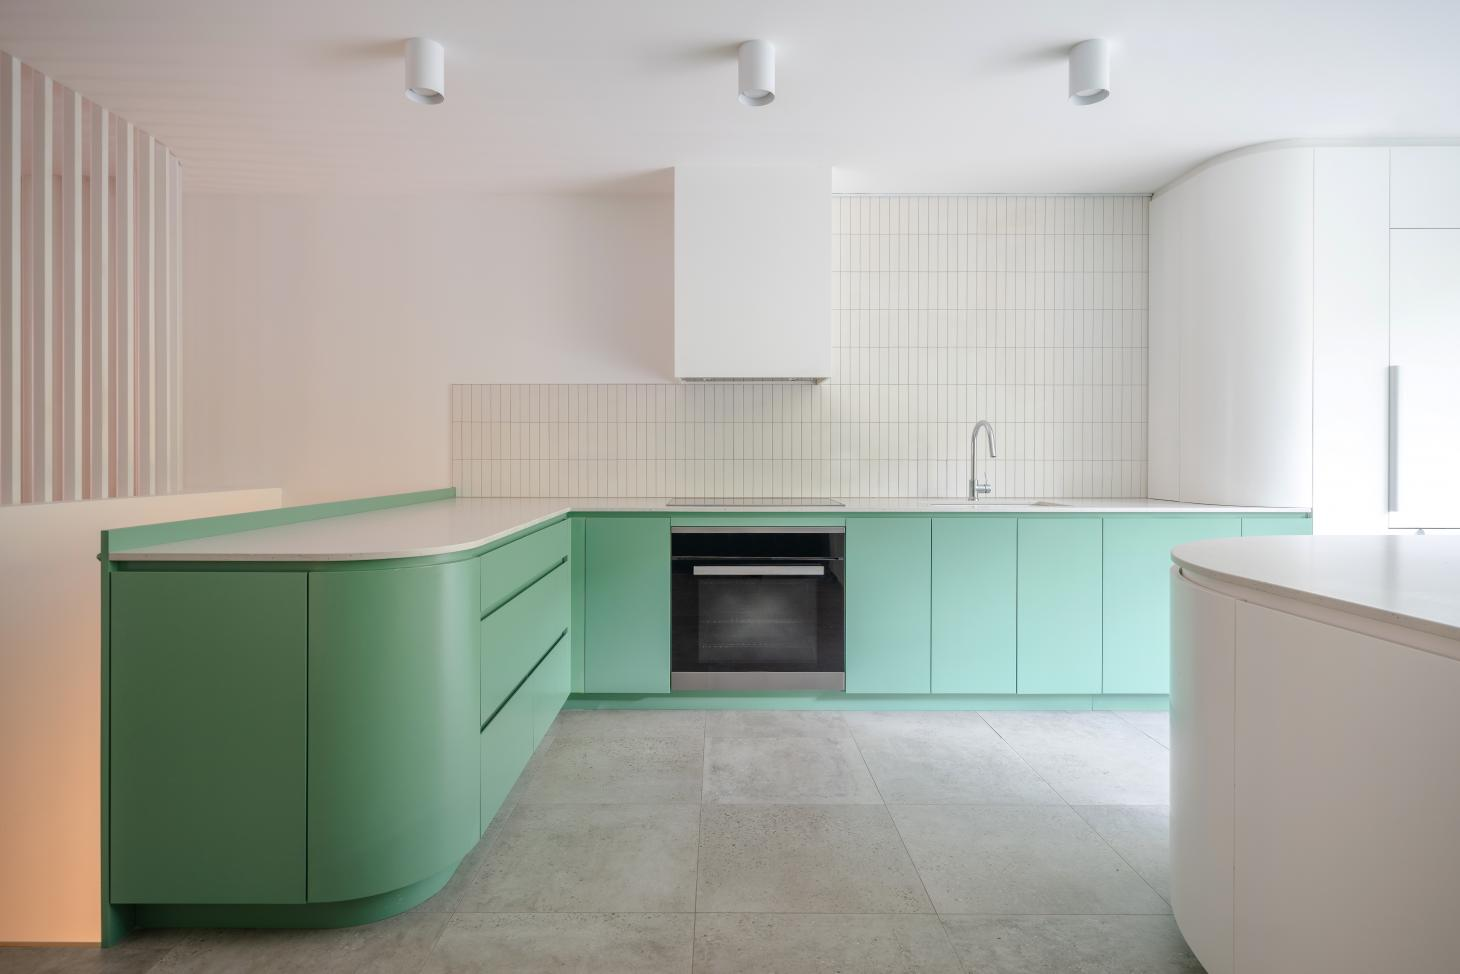 Quesnel Apartment interior with green kitchen by naturehumaine